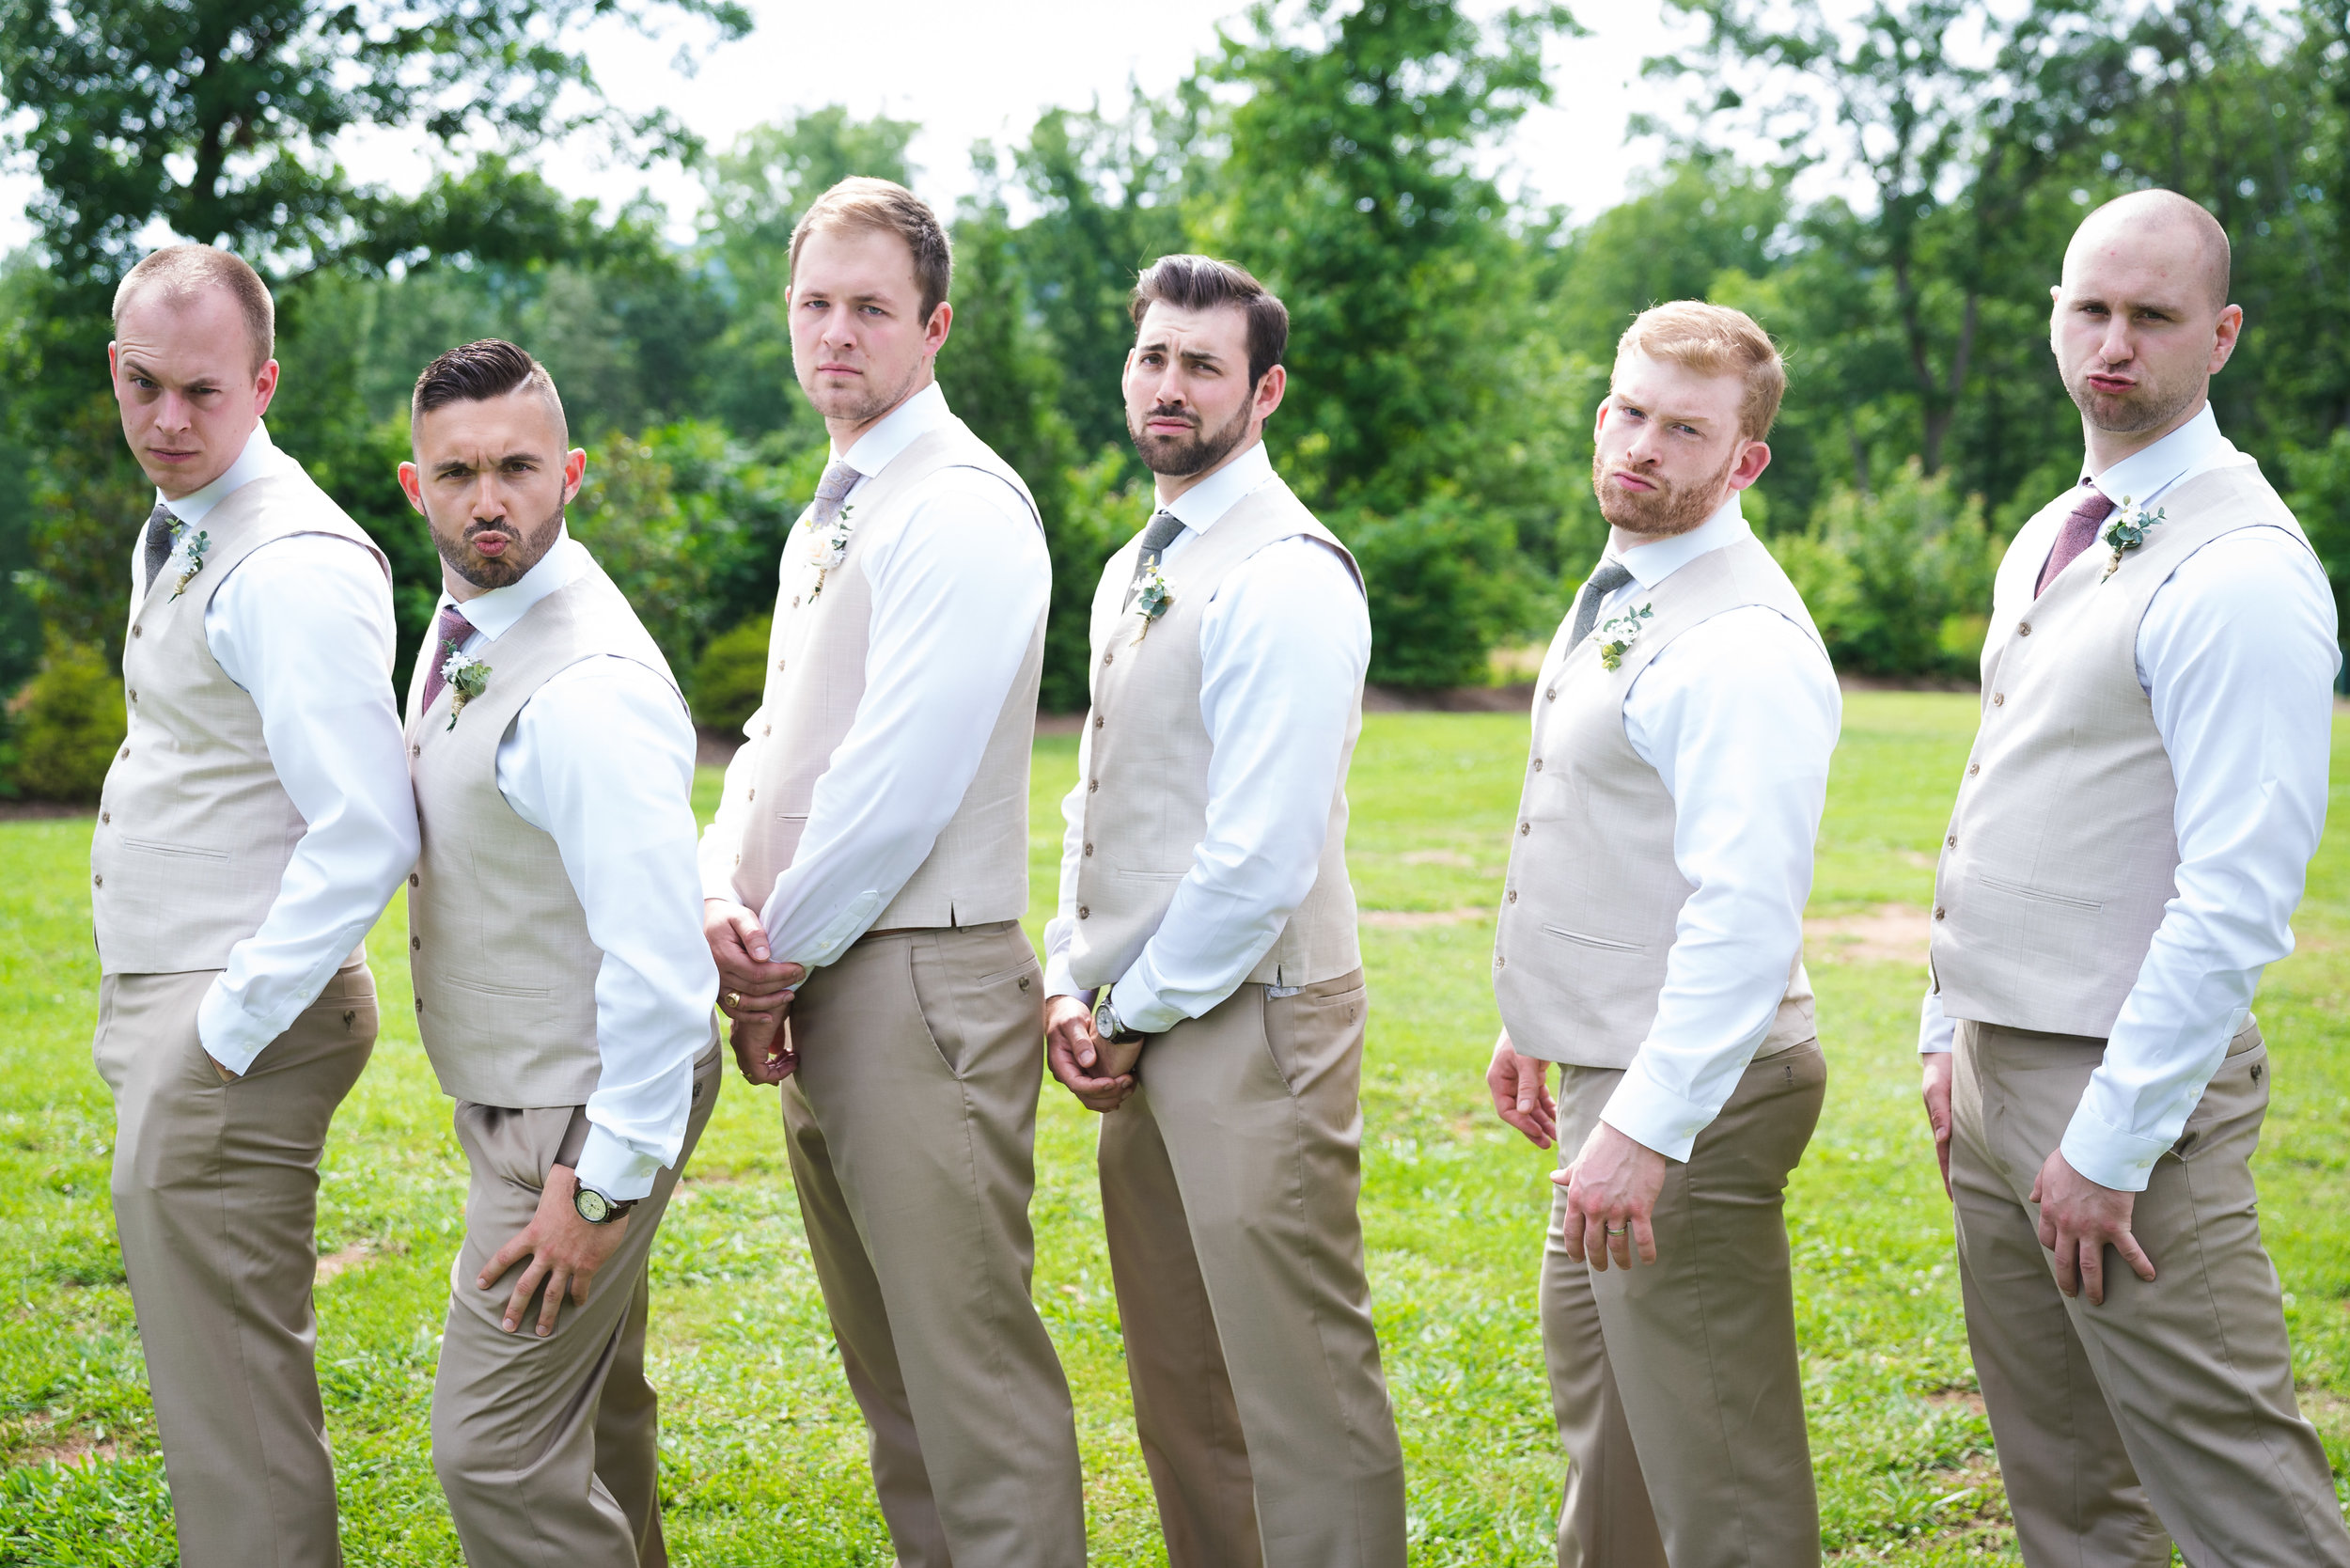 The groomsmen - Viewpoint at Buckhorn Creek | Greenville, SC